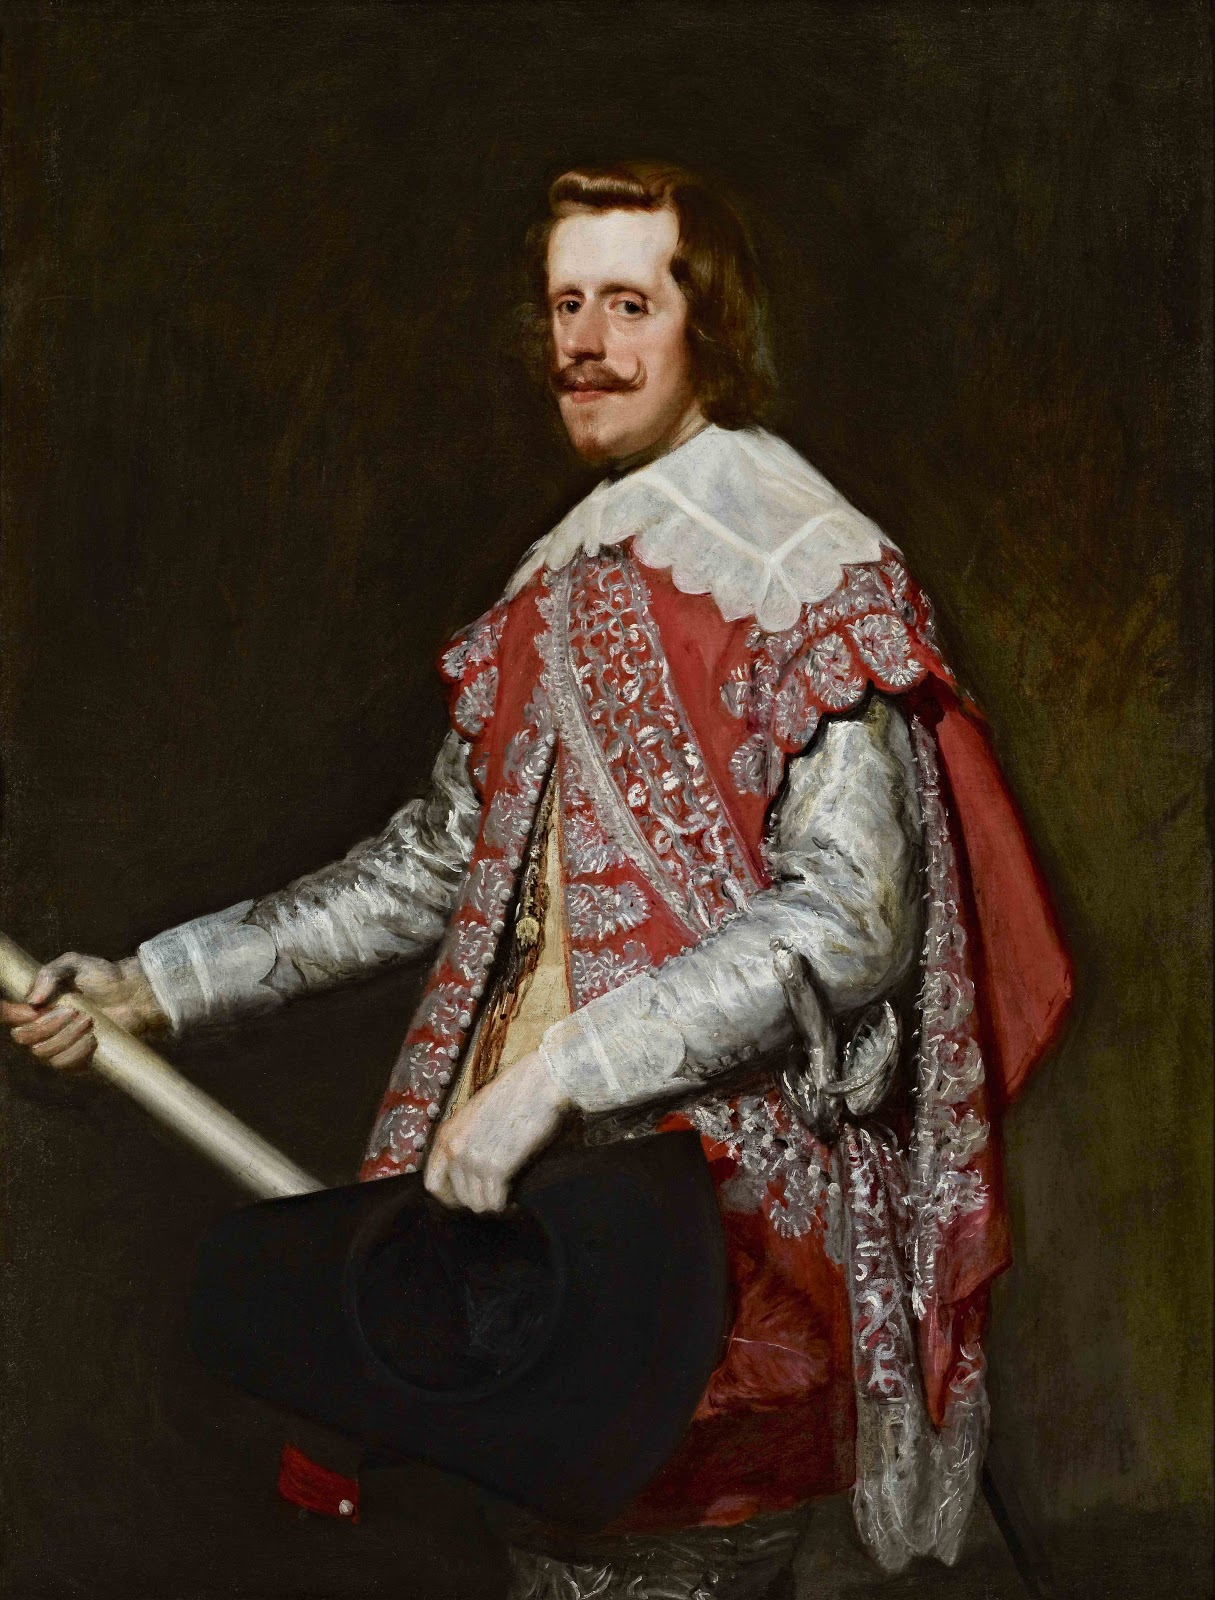 Fraga Spain  City new picture : TESPIS MAGAZINE: El Retrato de Felipe IV de VELAZQUEZ. Frick ...